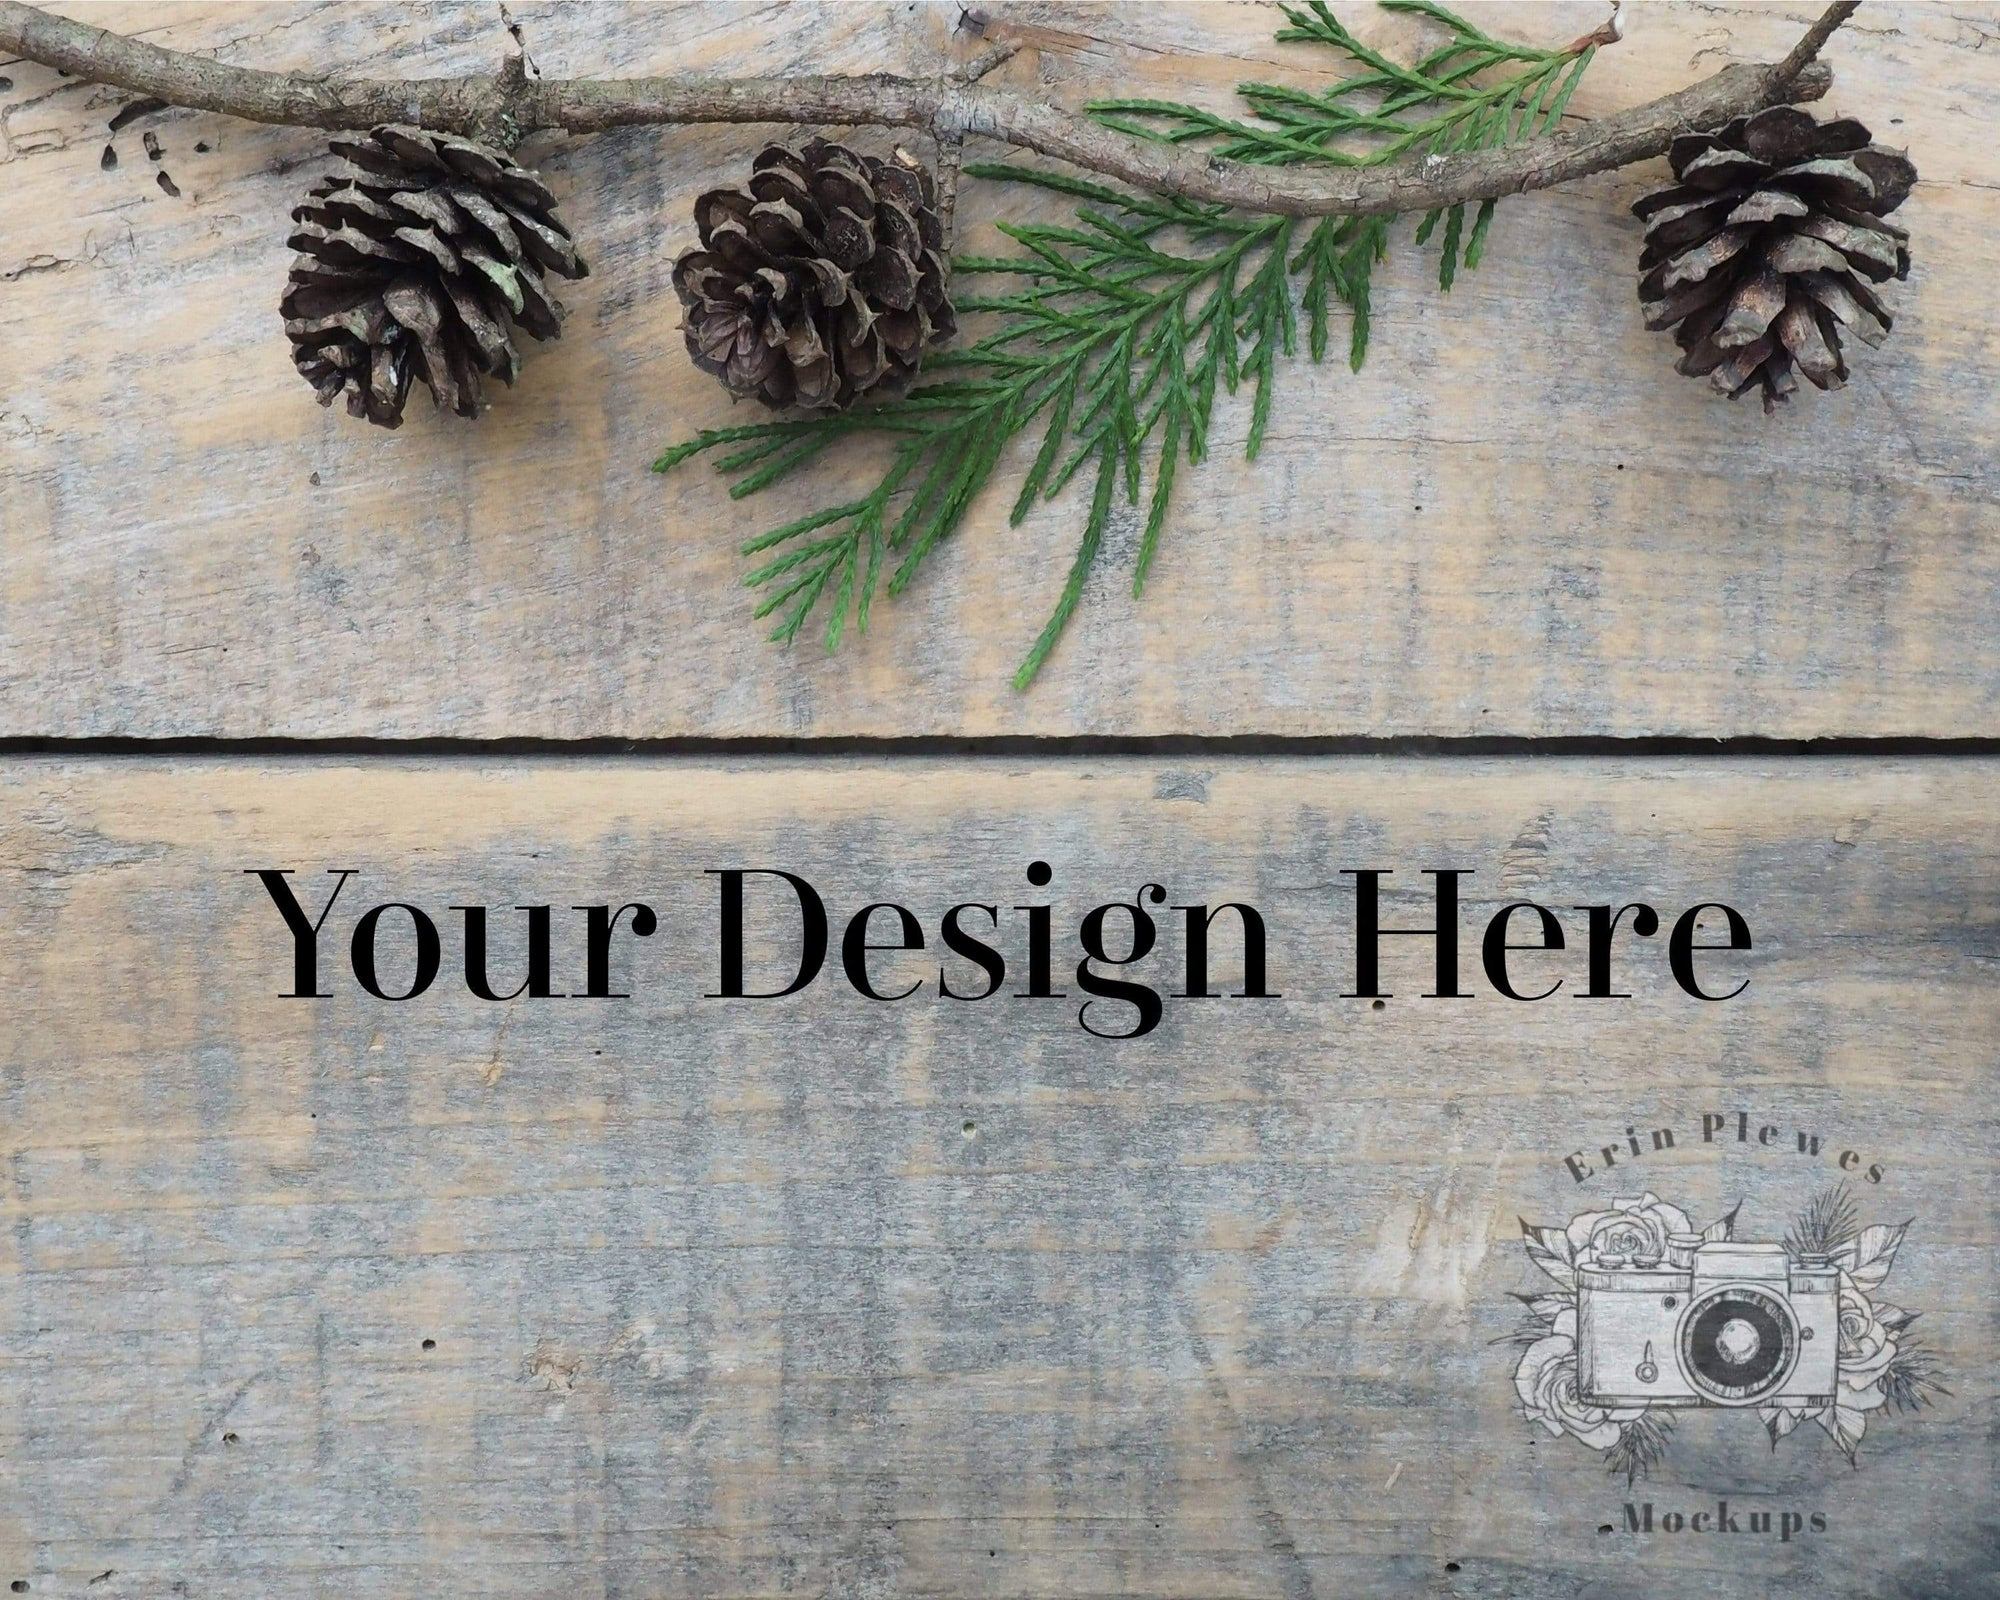 Erin Plewes Mockups Wood Background Mockup, Christmas Styled Stock Photo, Rustic Barn Wood Background Paper, JPG Digital Download Blank Template